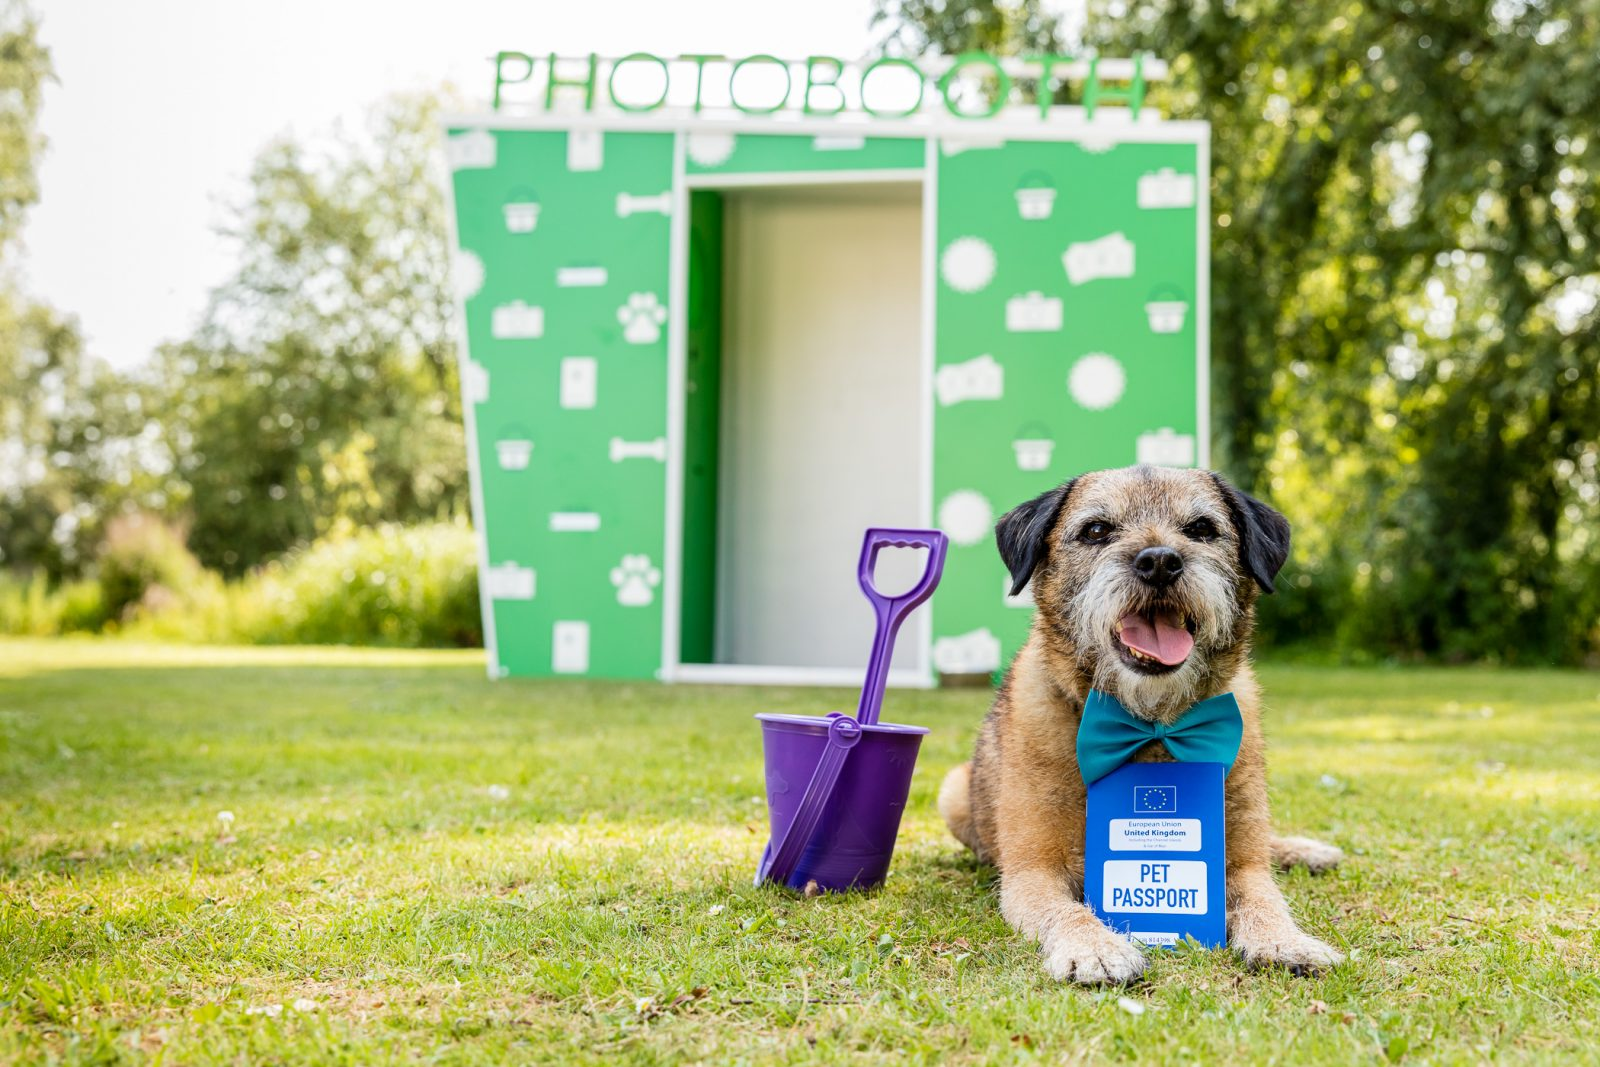 dogfest photo booth